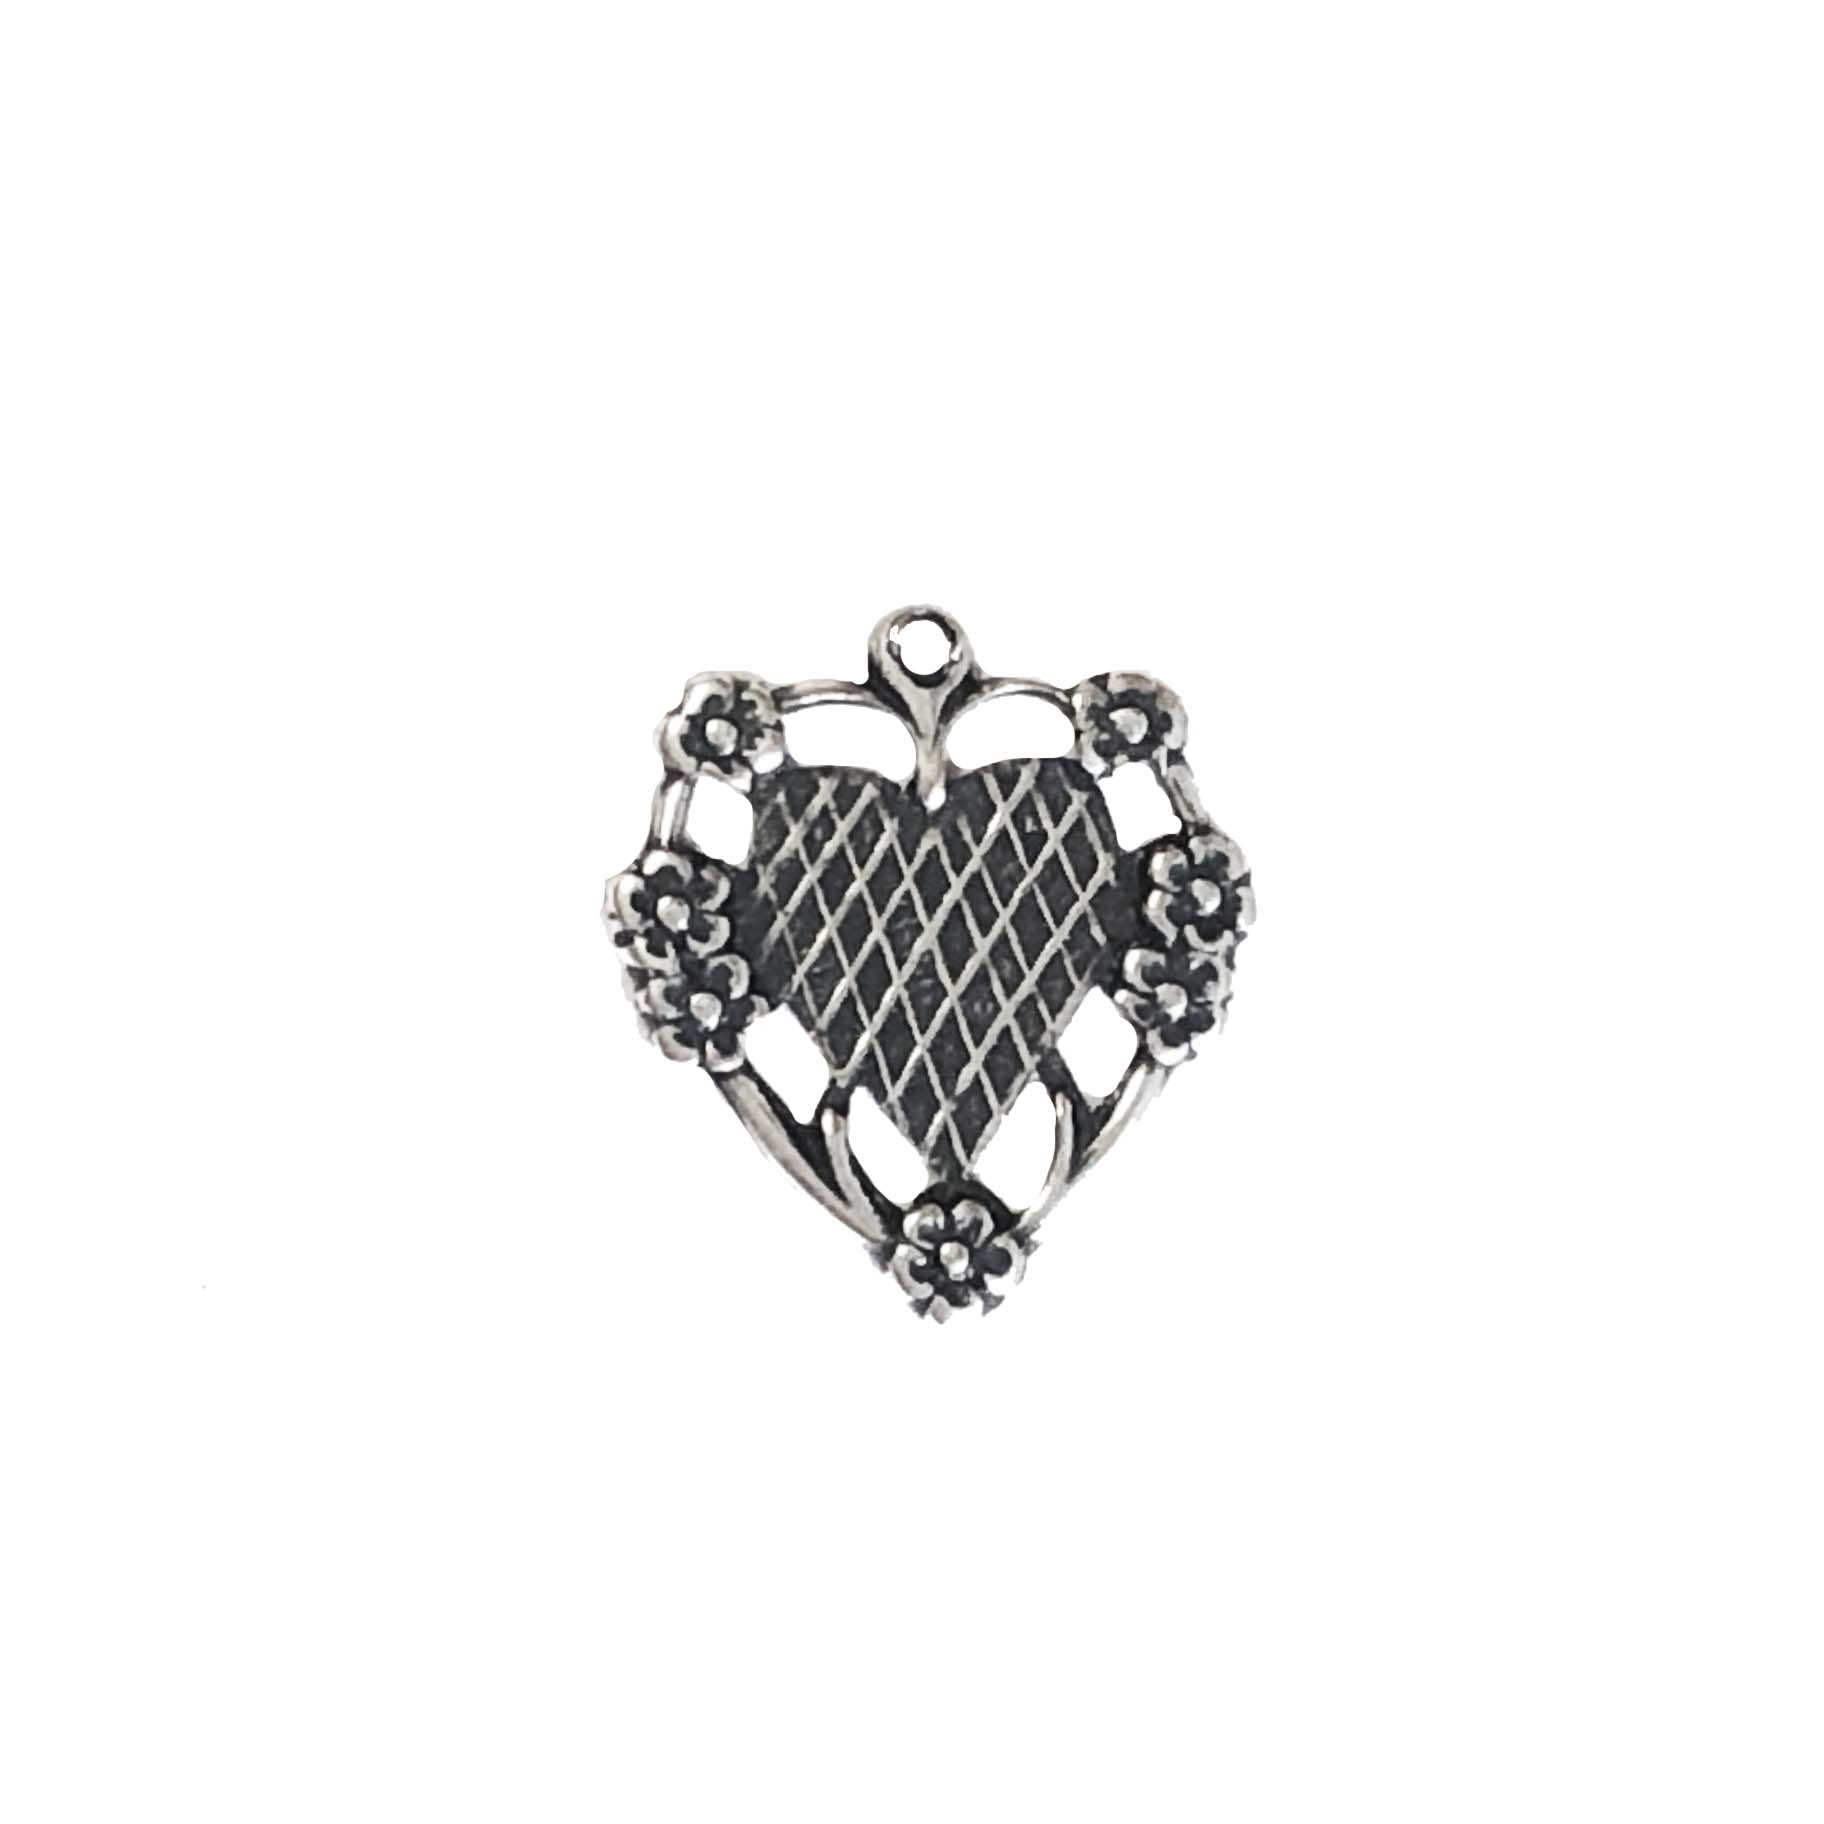 floral heart charm, silverware silver plate, mount, heart, charm, mount charm, brass stamping, heart charm, brass, US made, floral heart, B'sue Boutiques, 20x17mm, jewelry making, jewelry supplies, vintage supplies, jewelry findings, 09594